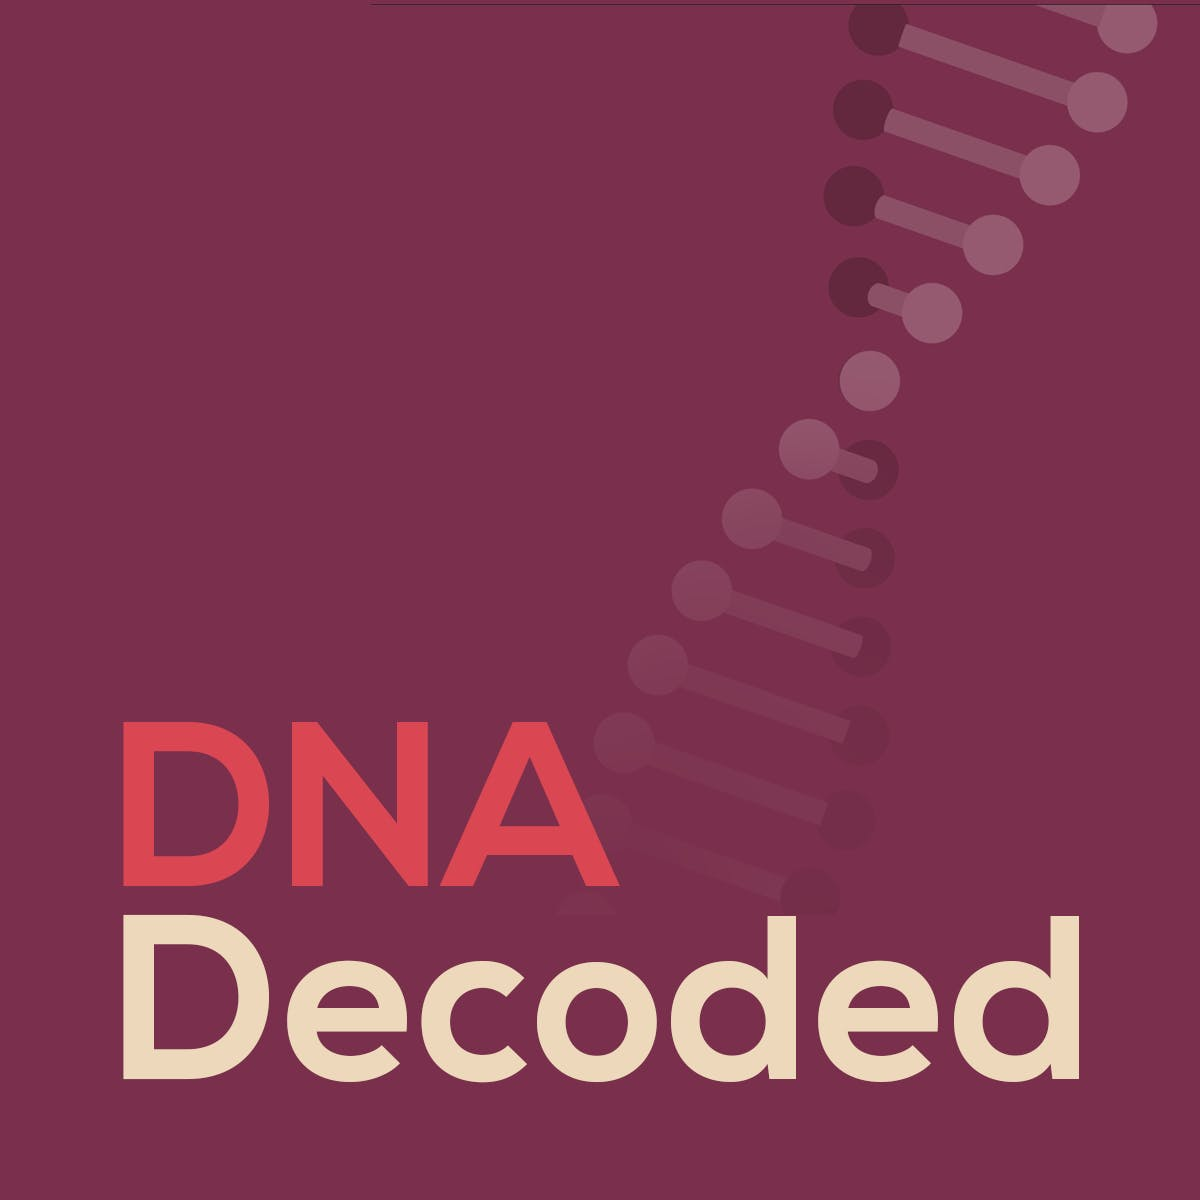 DNA Decoded